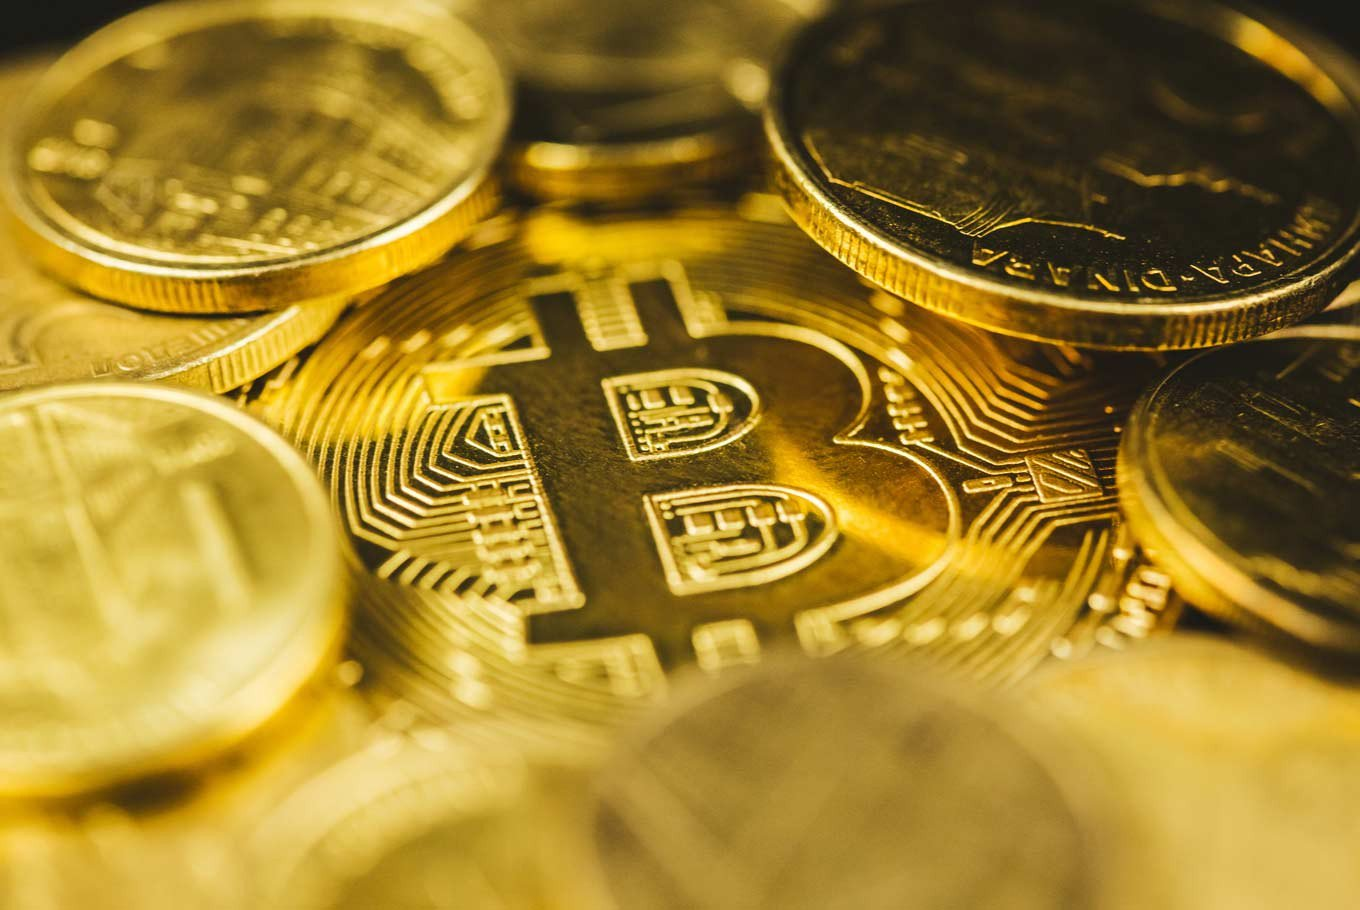 Helpful information about bitcoin price - Mind education